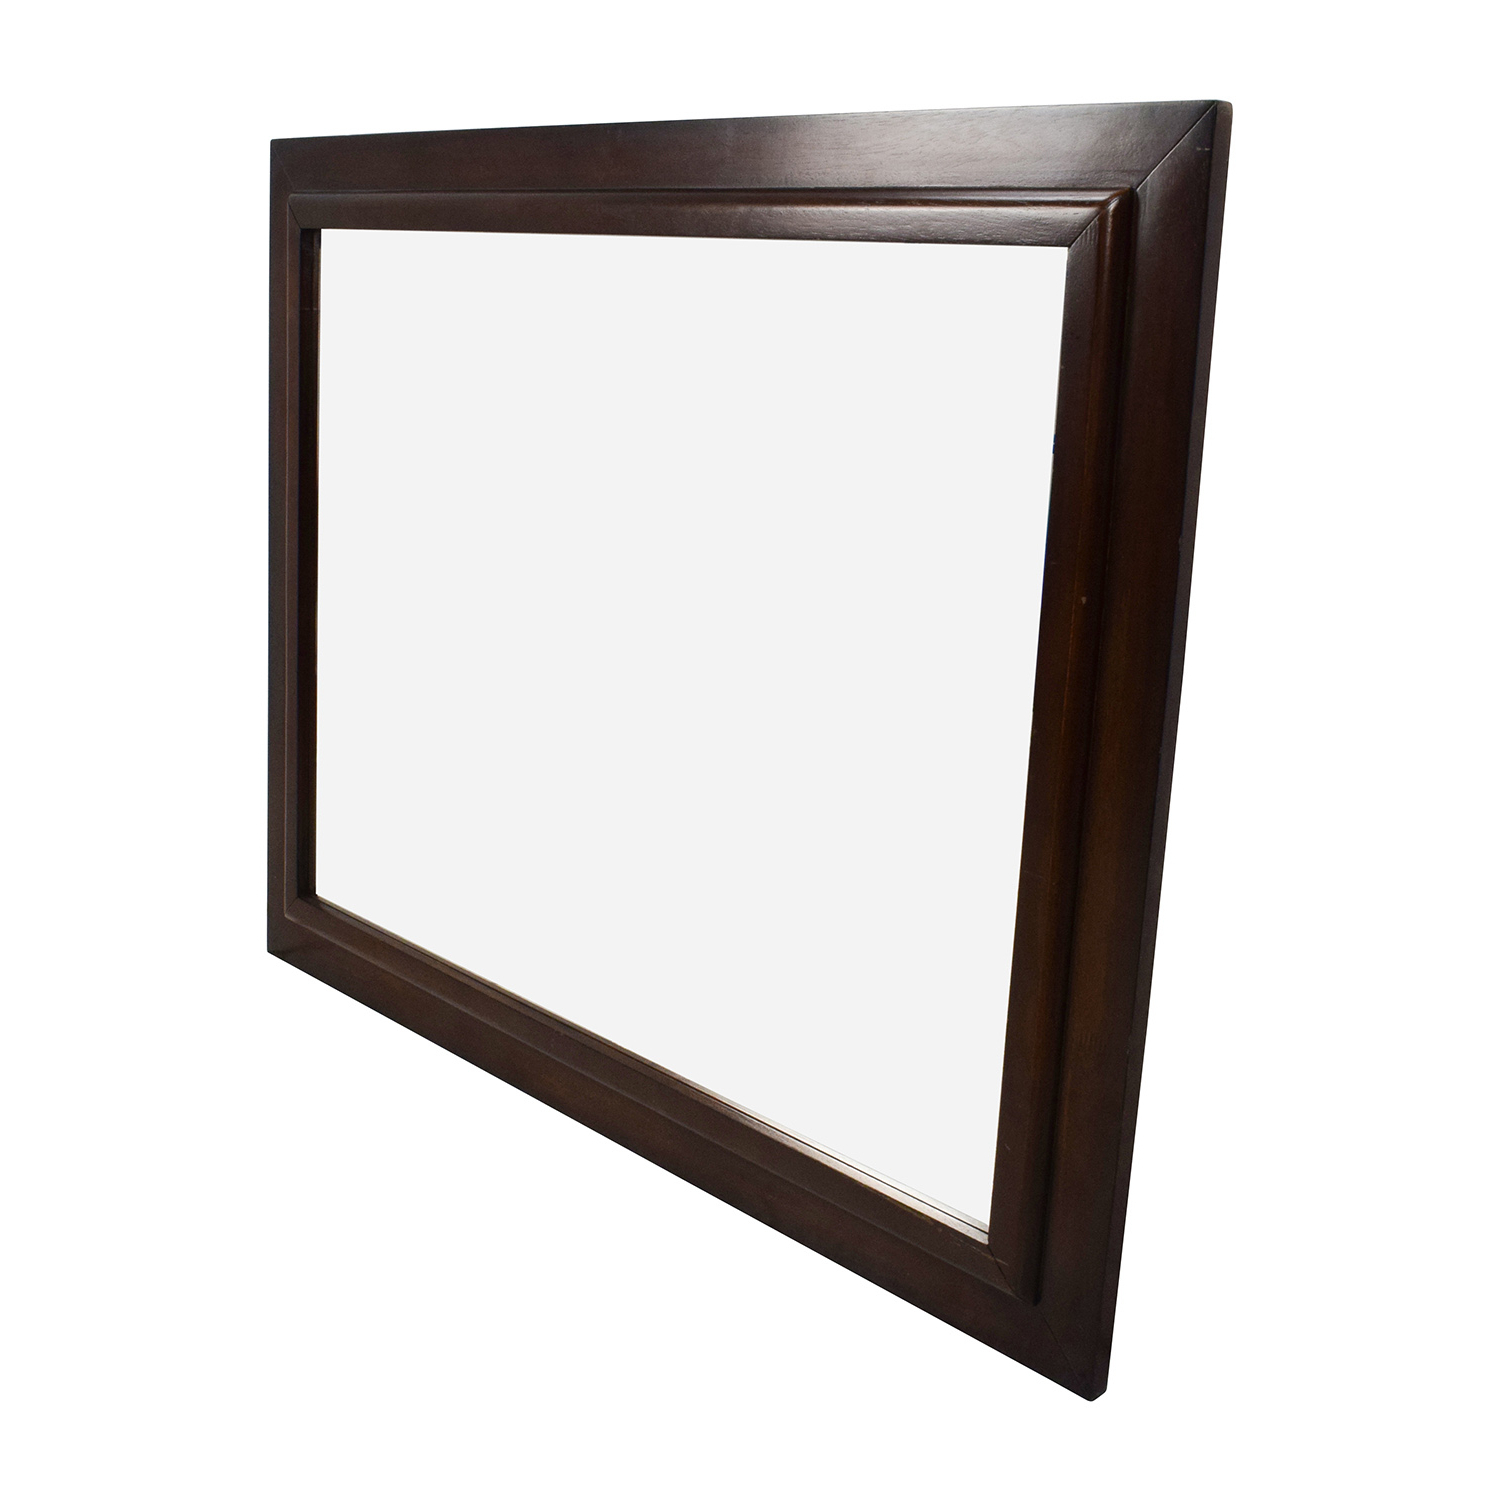 [%80% Off – Large Square Wood Framed Wall Mirror / Decor With Regard To Most Recent Large Wall Mirrors With Wood Frame|Large Wall Mirrors With Wood Frame Pertaining To Popular 80% Off – Large Square Wood Framed Wall Mirror / Decor|Best And Newest Large Wall Mirrors With Wood Frame Pertaining To 80% Off – Large Square Wood Framed Wall Mirror / Decor|Favorite 80% Off – Large Square Wood Framed Wall Mirror / Decor For Large Wall Mirrors With Wood Frame%] (View 4 of 20)